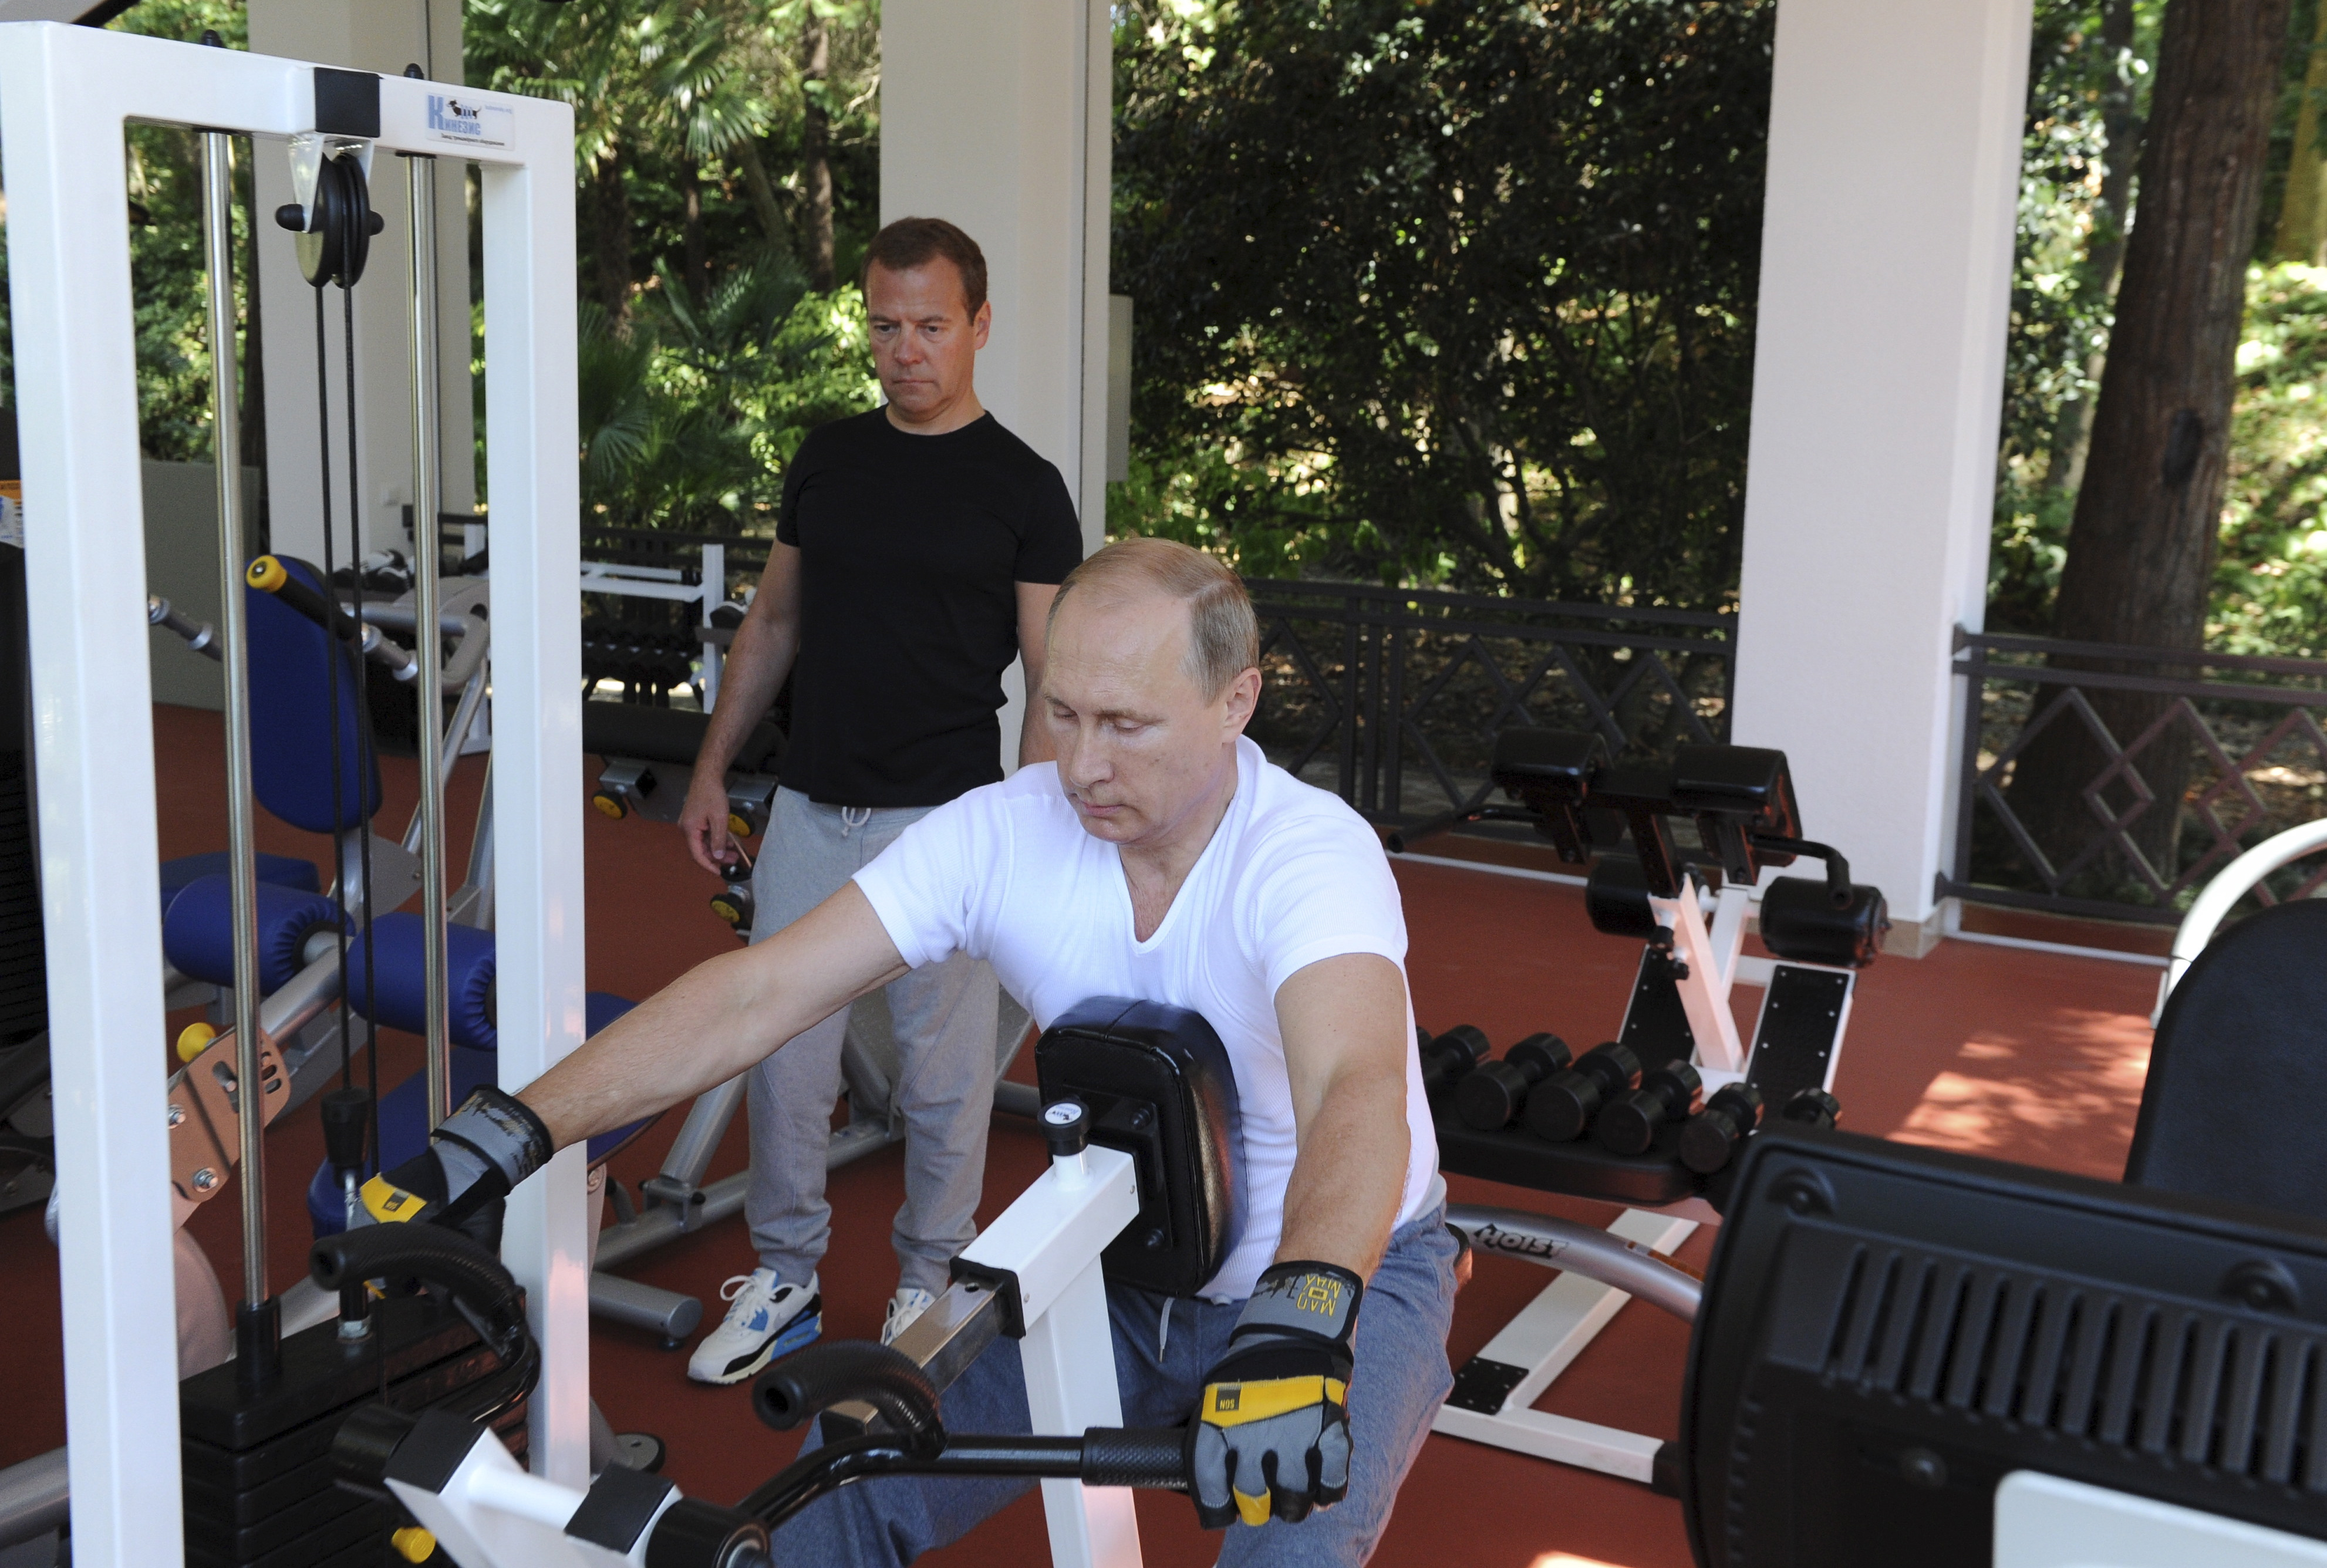 putin doing manly things vladimir putin doing manly things pictures cbs news. Black Bedroom Furniture Sets. Home Design Ideas